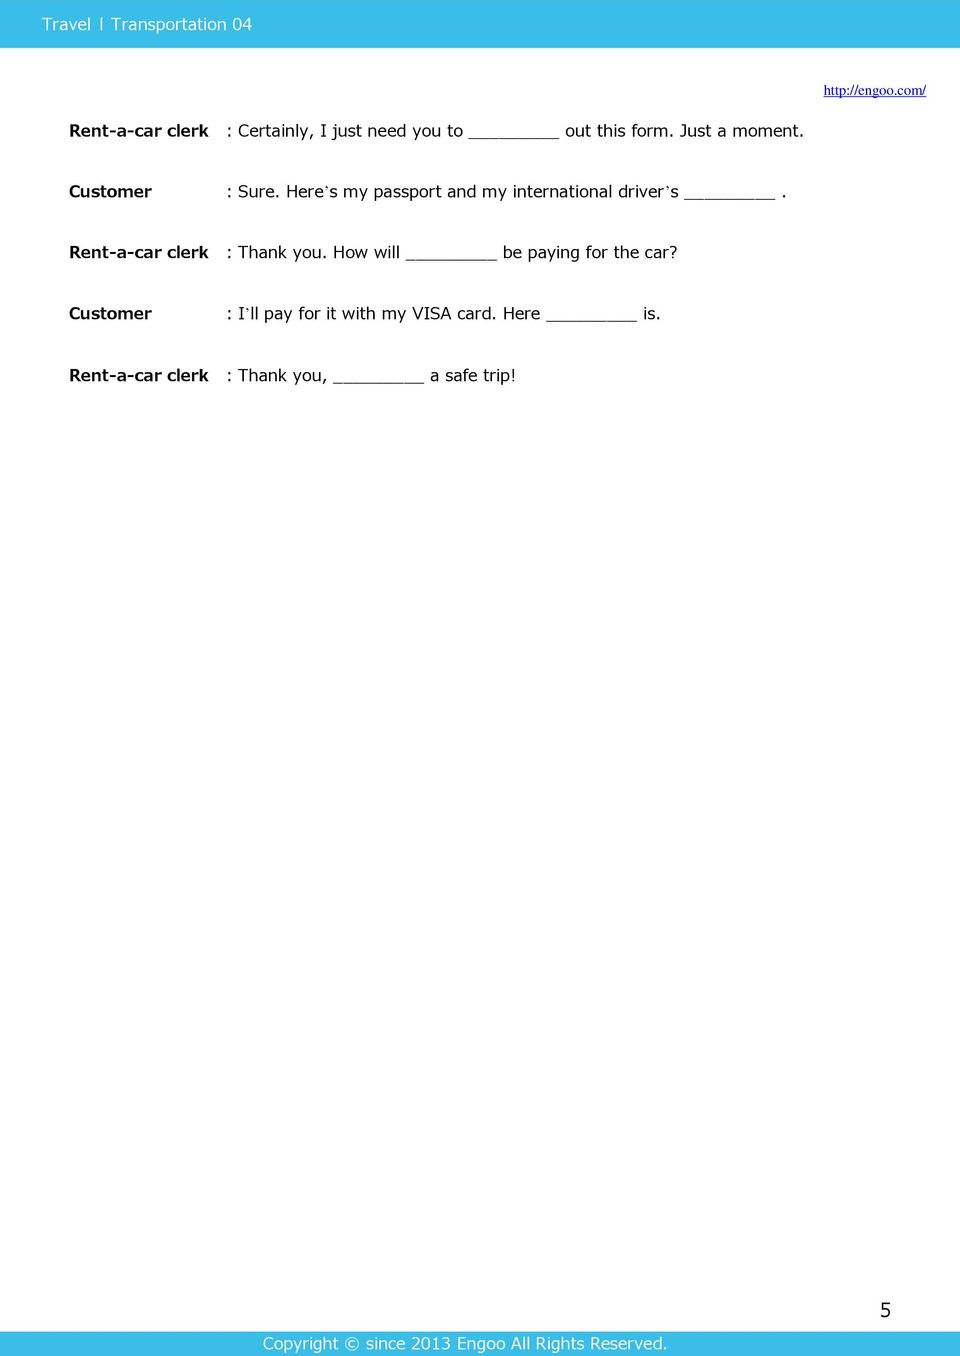 Rent-a-car clerk : Thank you. How will be paying for the car?